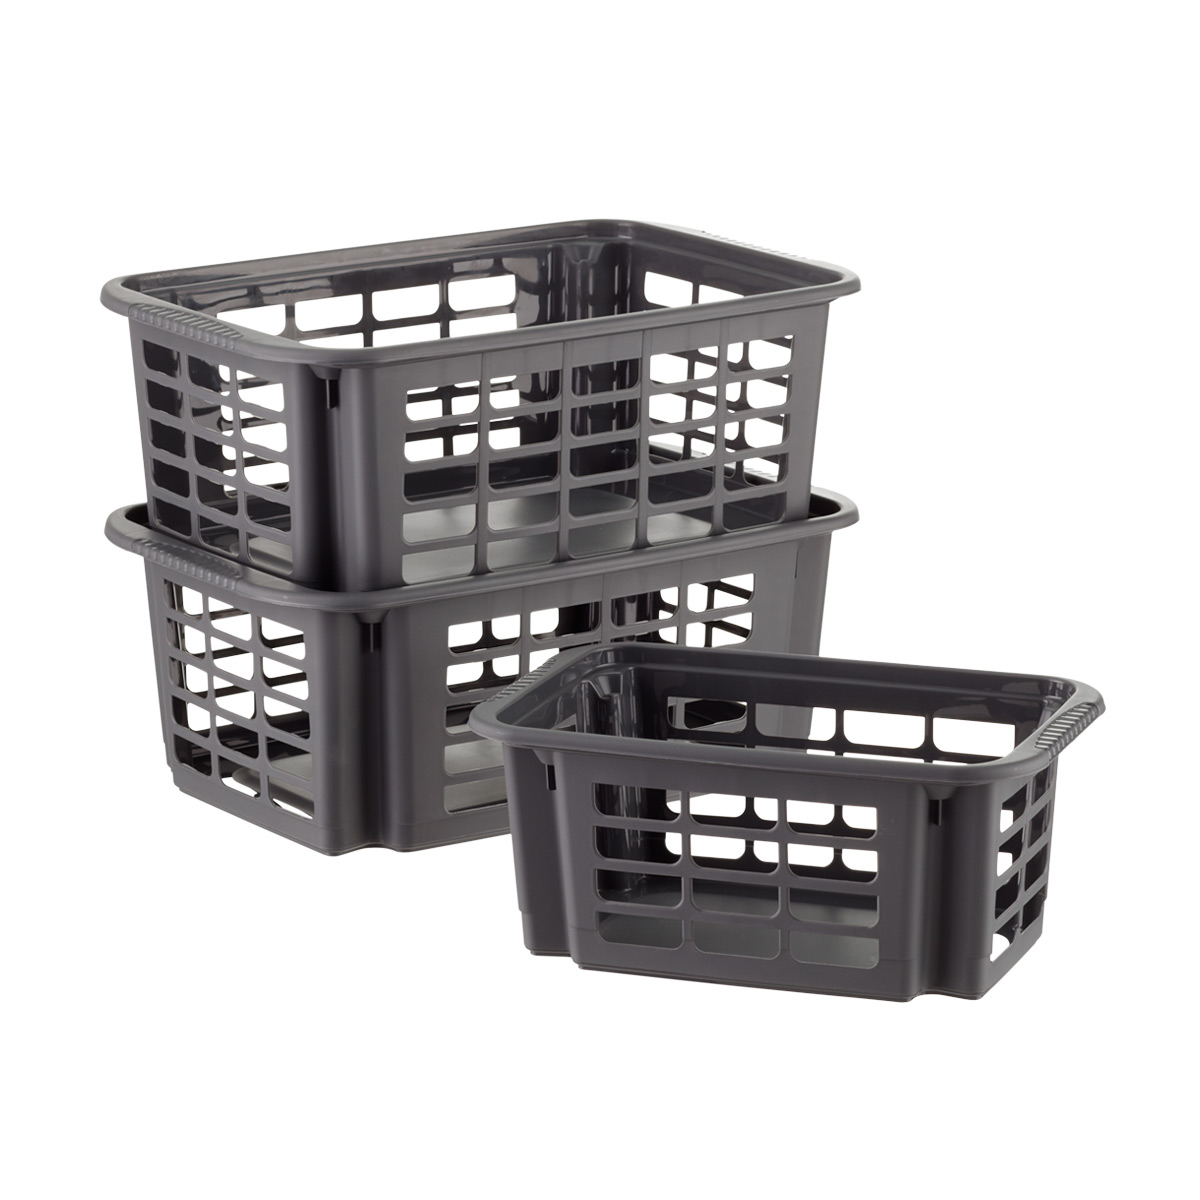 Incroyable Graphite Stackable Plastic Storage Baskets ...